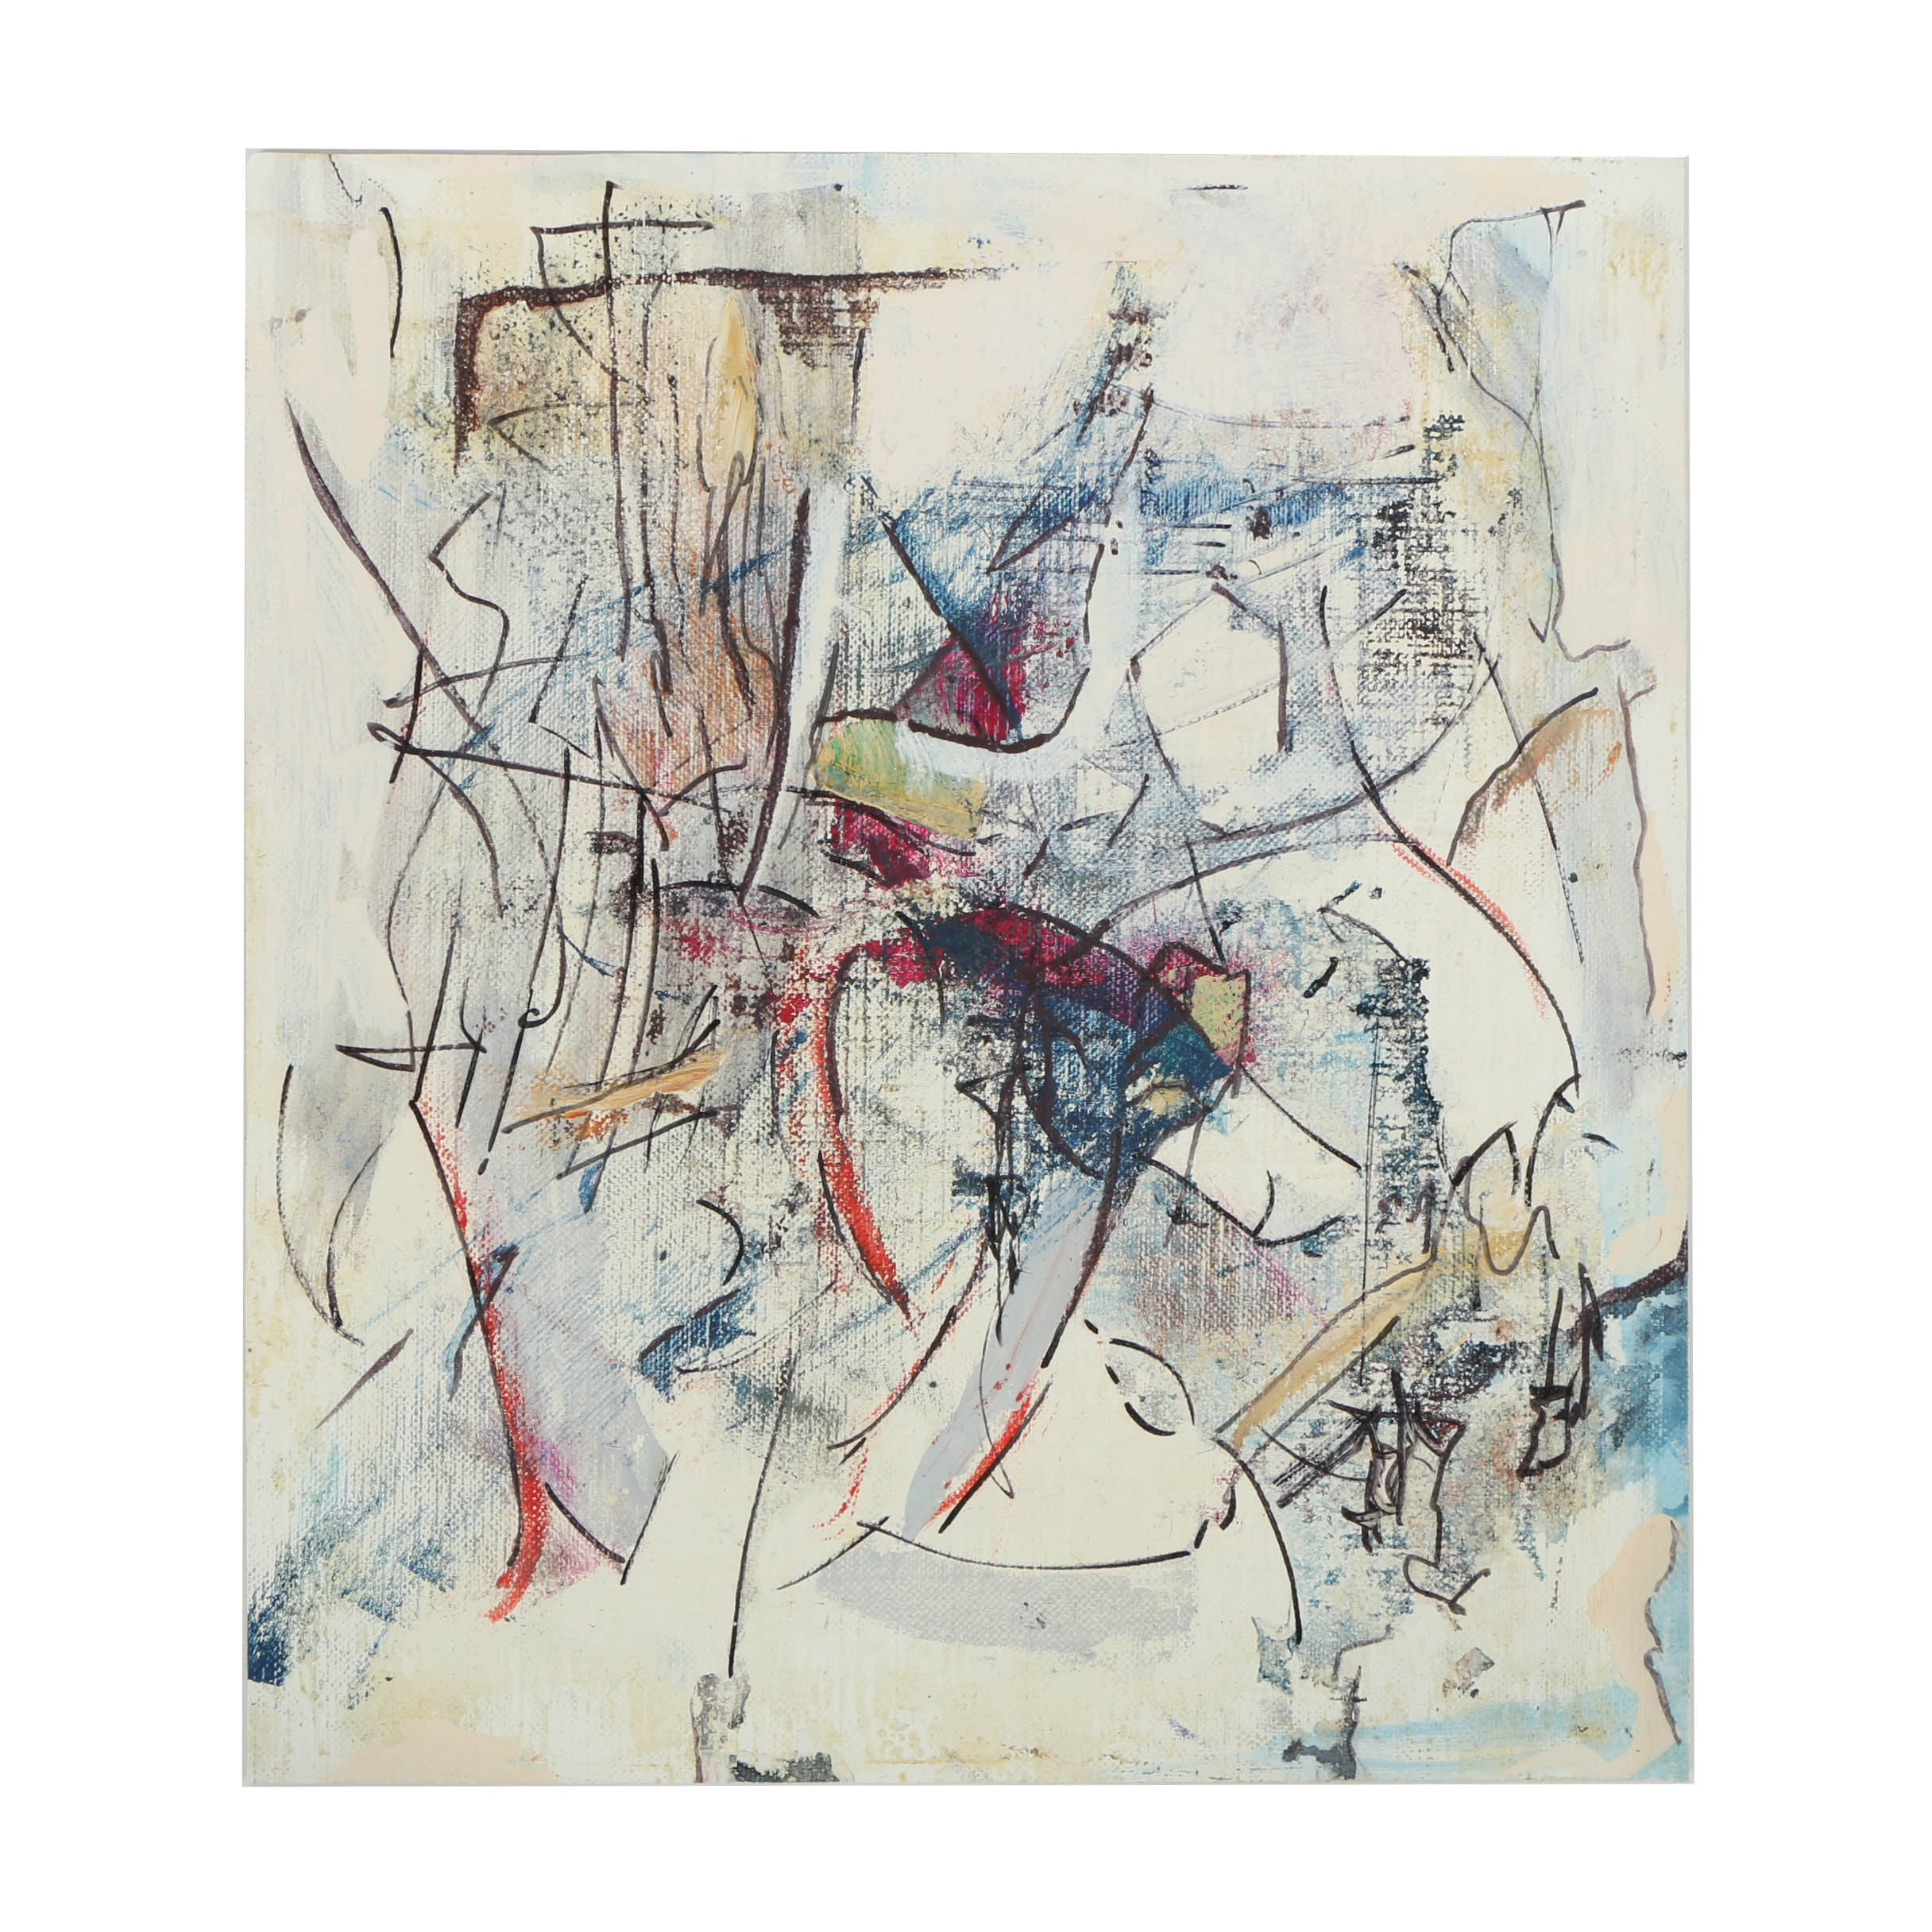 Ricardo Morin Oil Painting on Unstretched Linen Abstract Scene